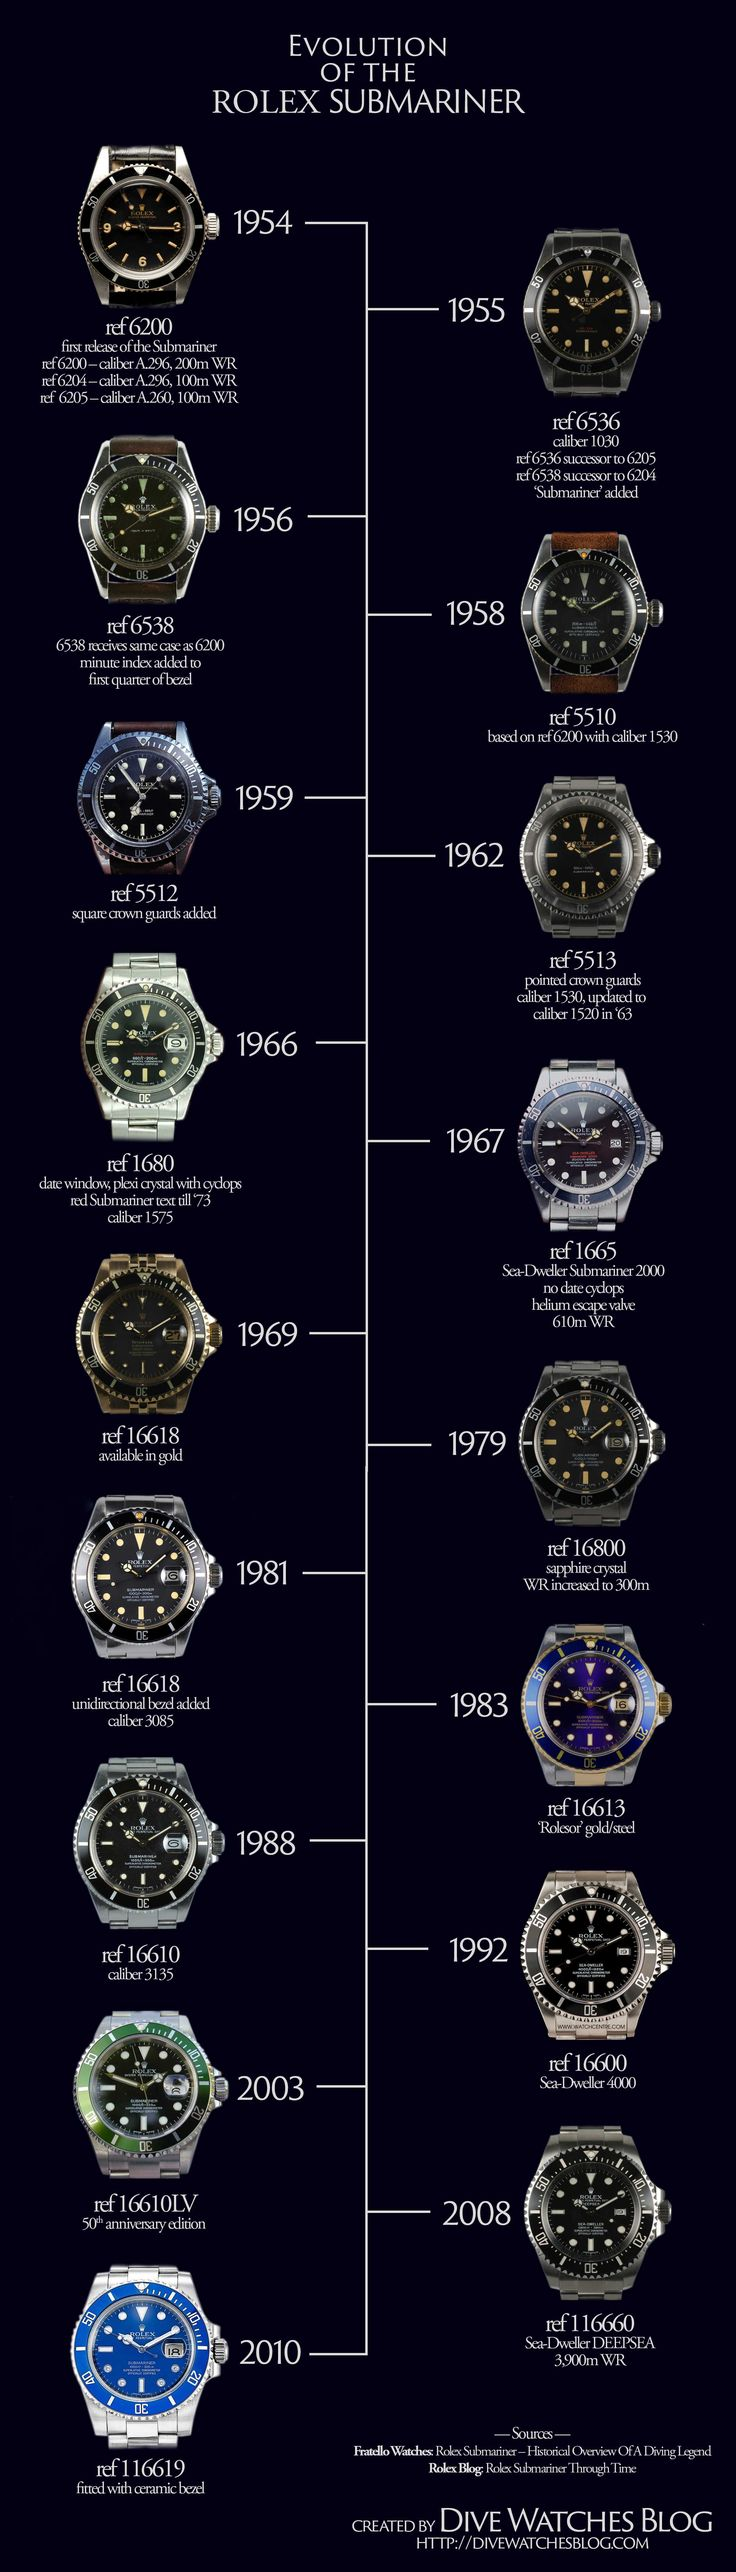 Evolution-of-the-Rolex-Submariner.jpg 2.160×7.550 piksel